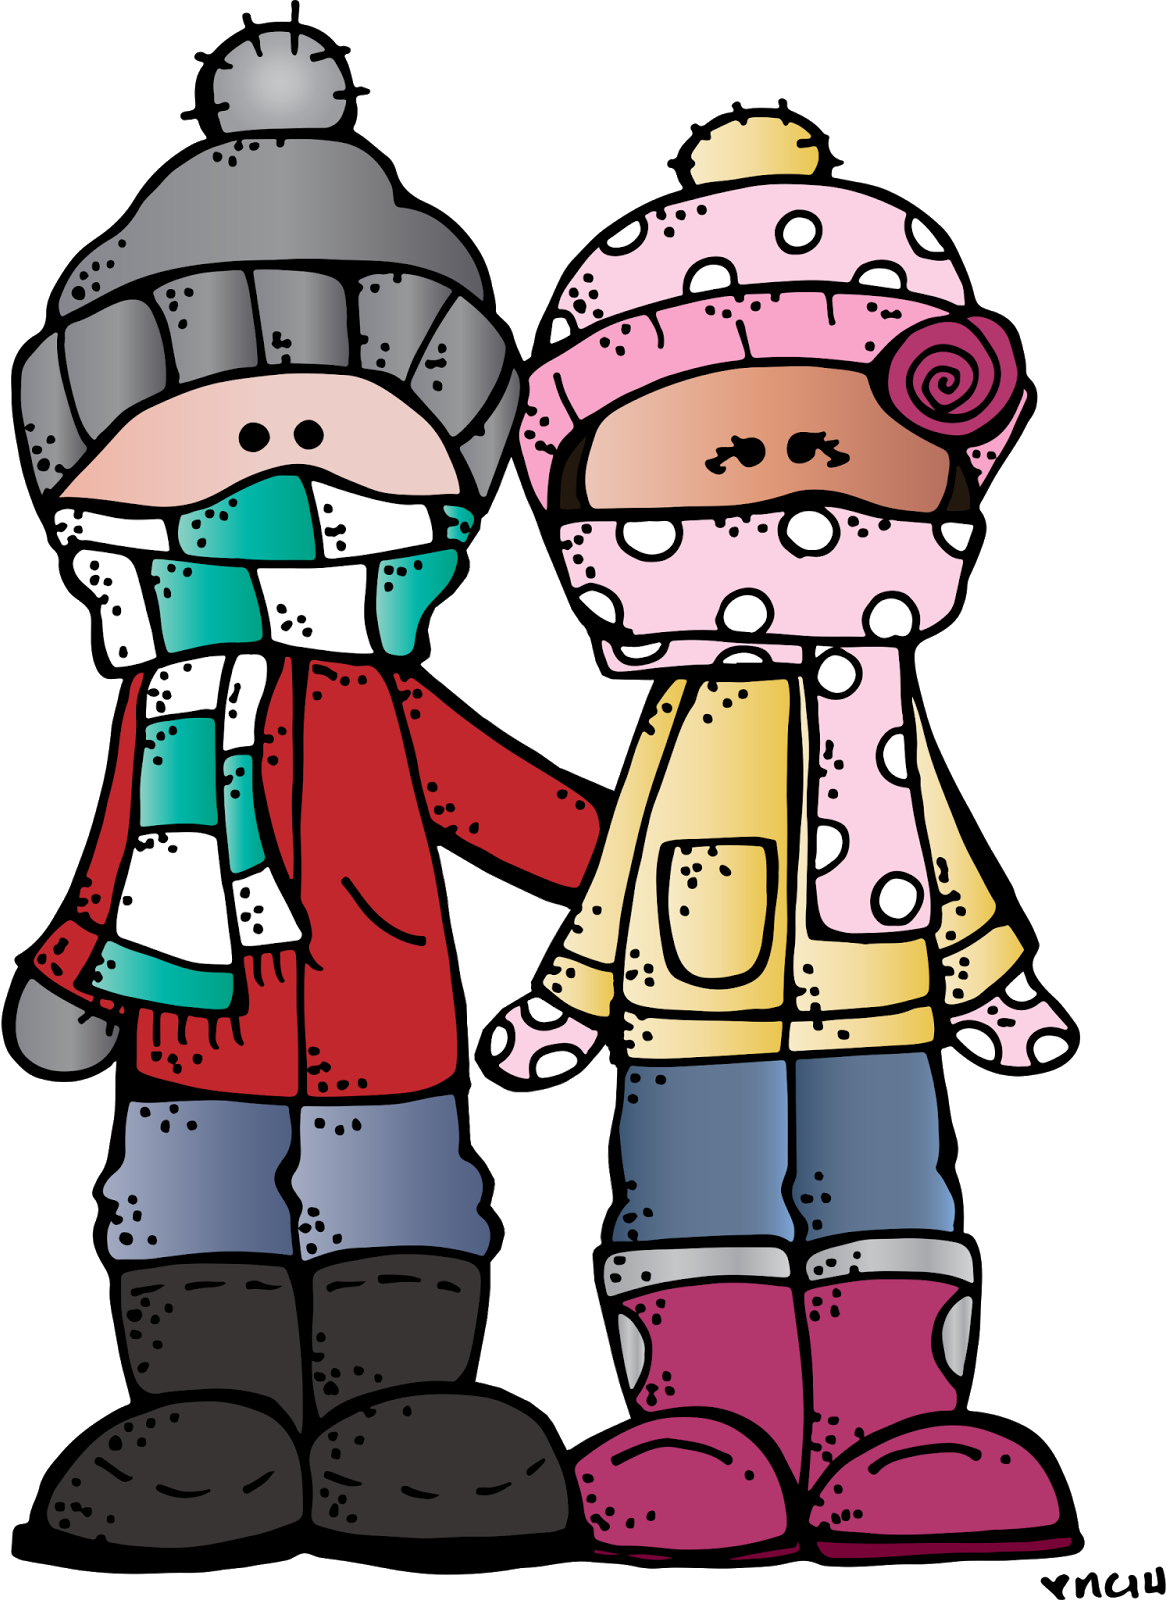 Coat clipart winter season Free Cold day Download